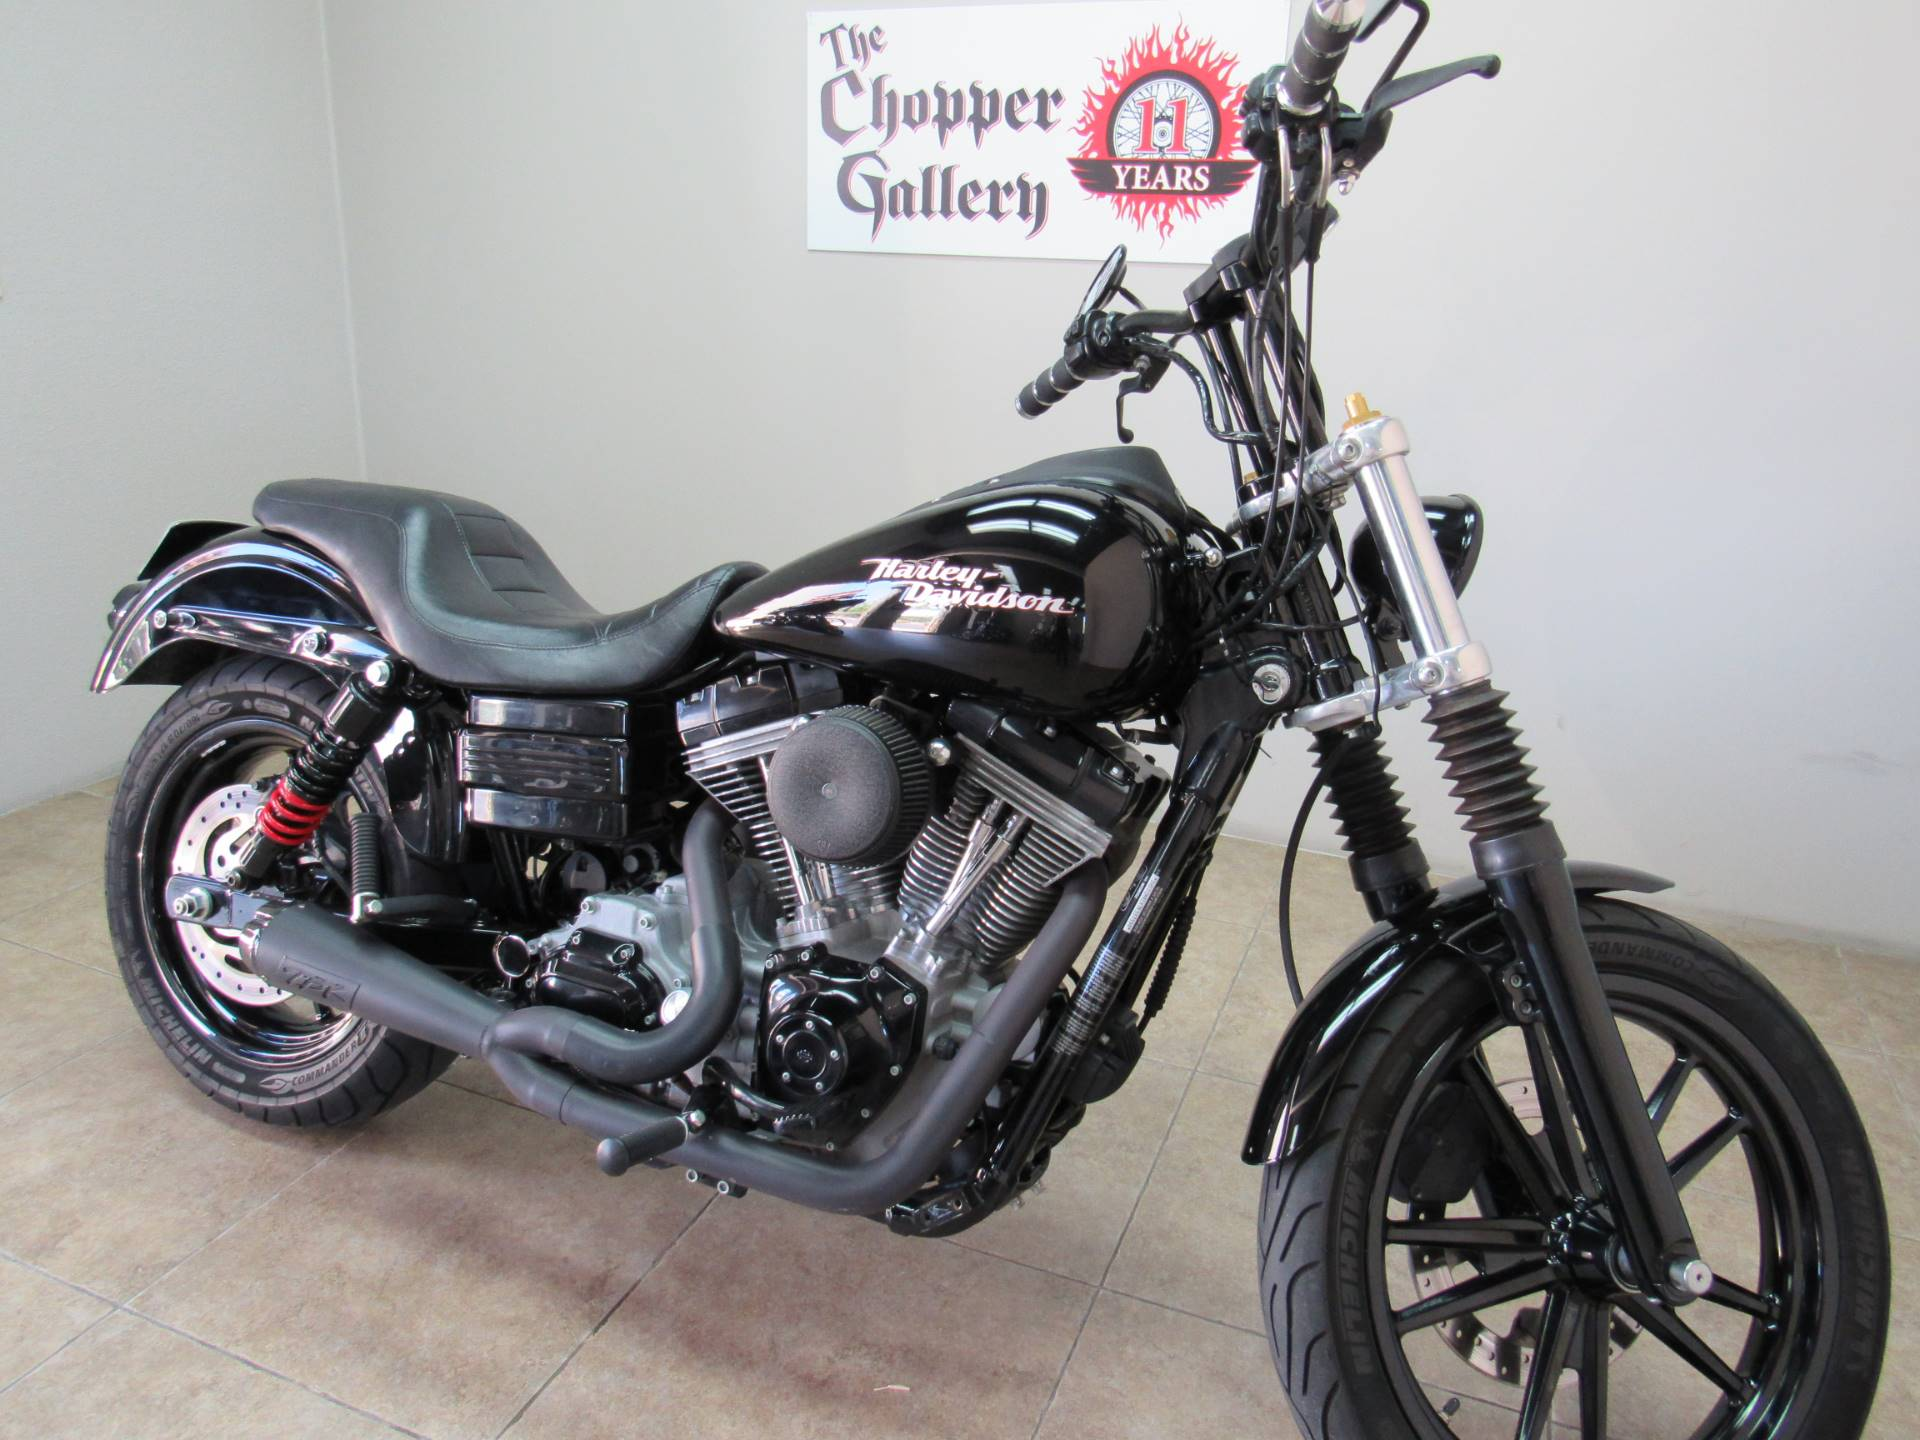 2007 Harley-Davidson Dyna® Super Glide® Custom in Temecula, California - Photo 3